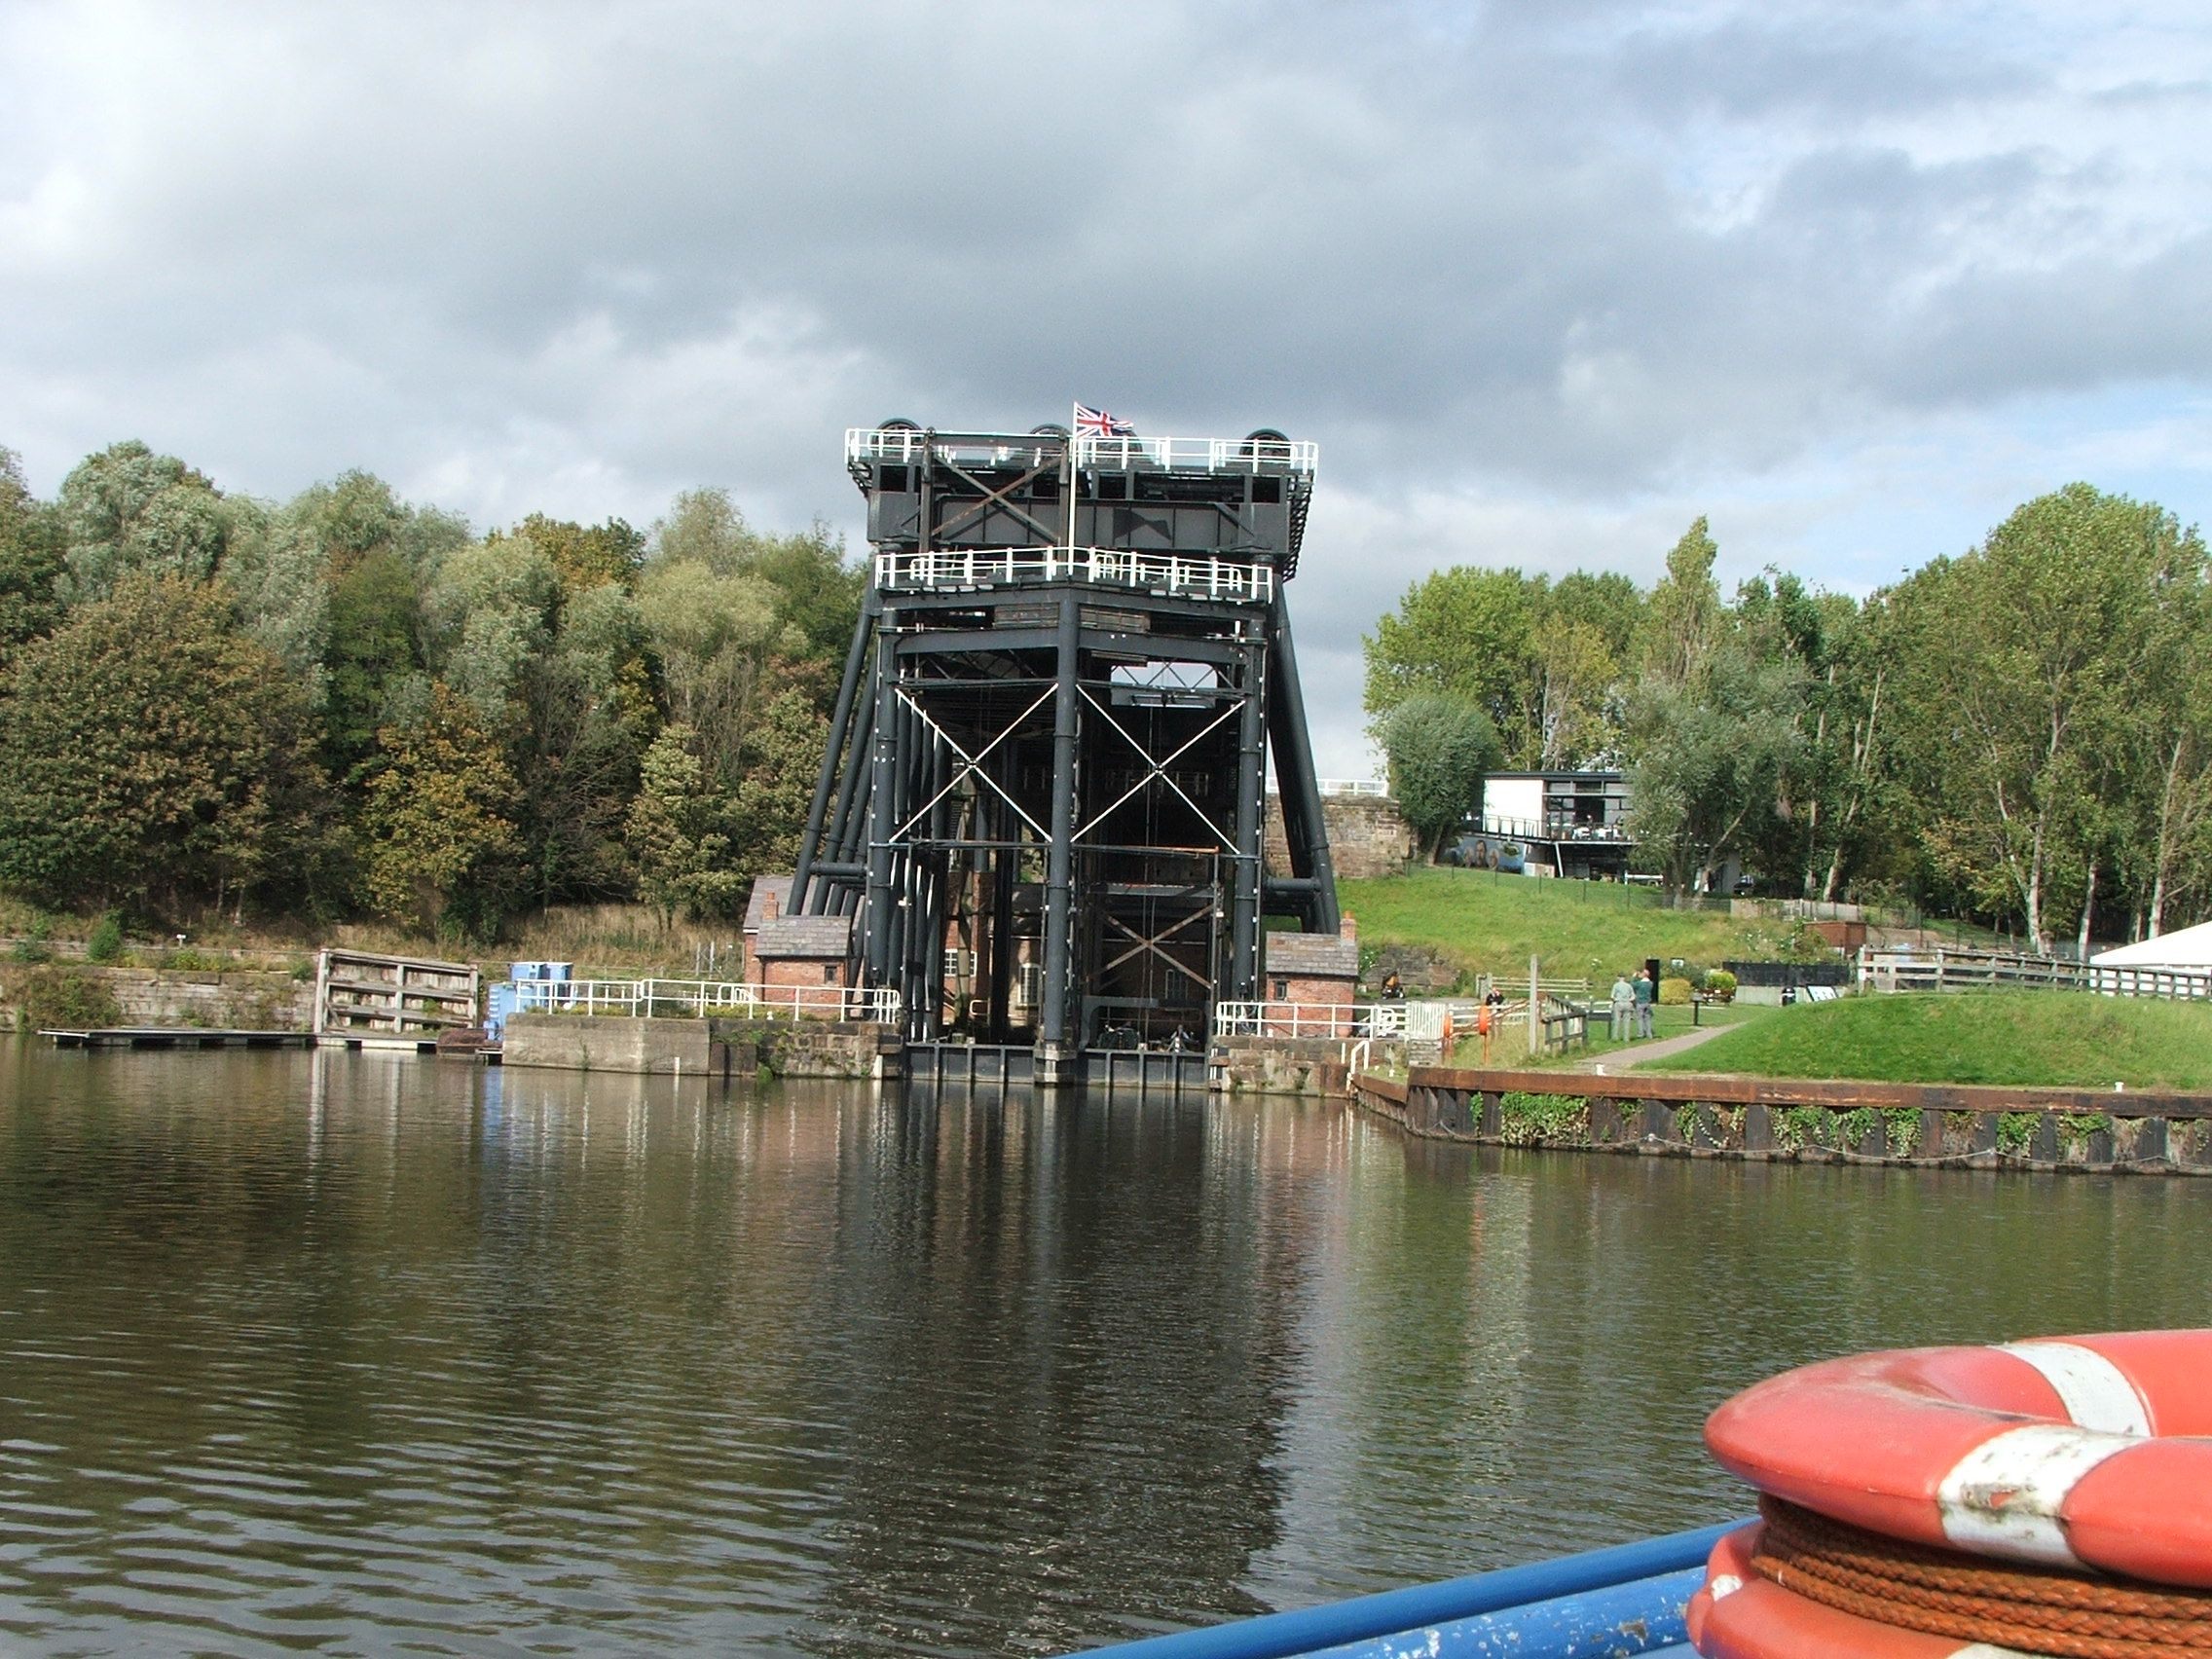 tha Anderton boat lift- one of the engineering marvels of Victorian England